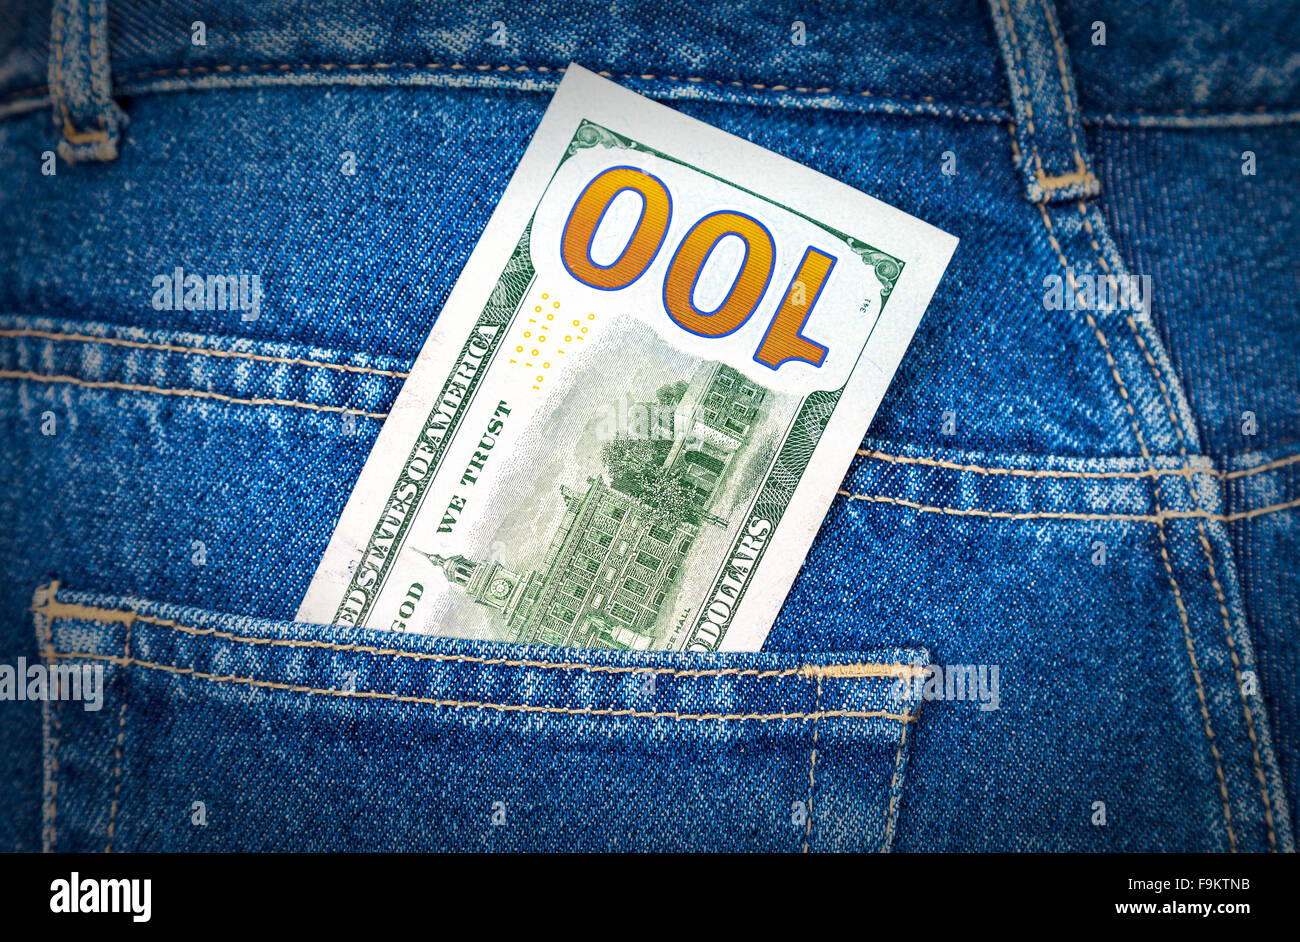 One hundred dollars bill sticking out of the back jeans pocket - Stock Image